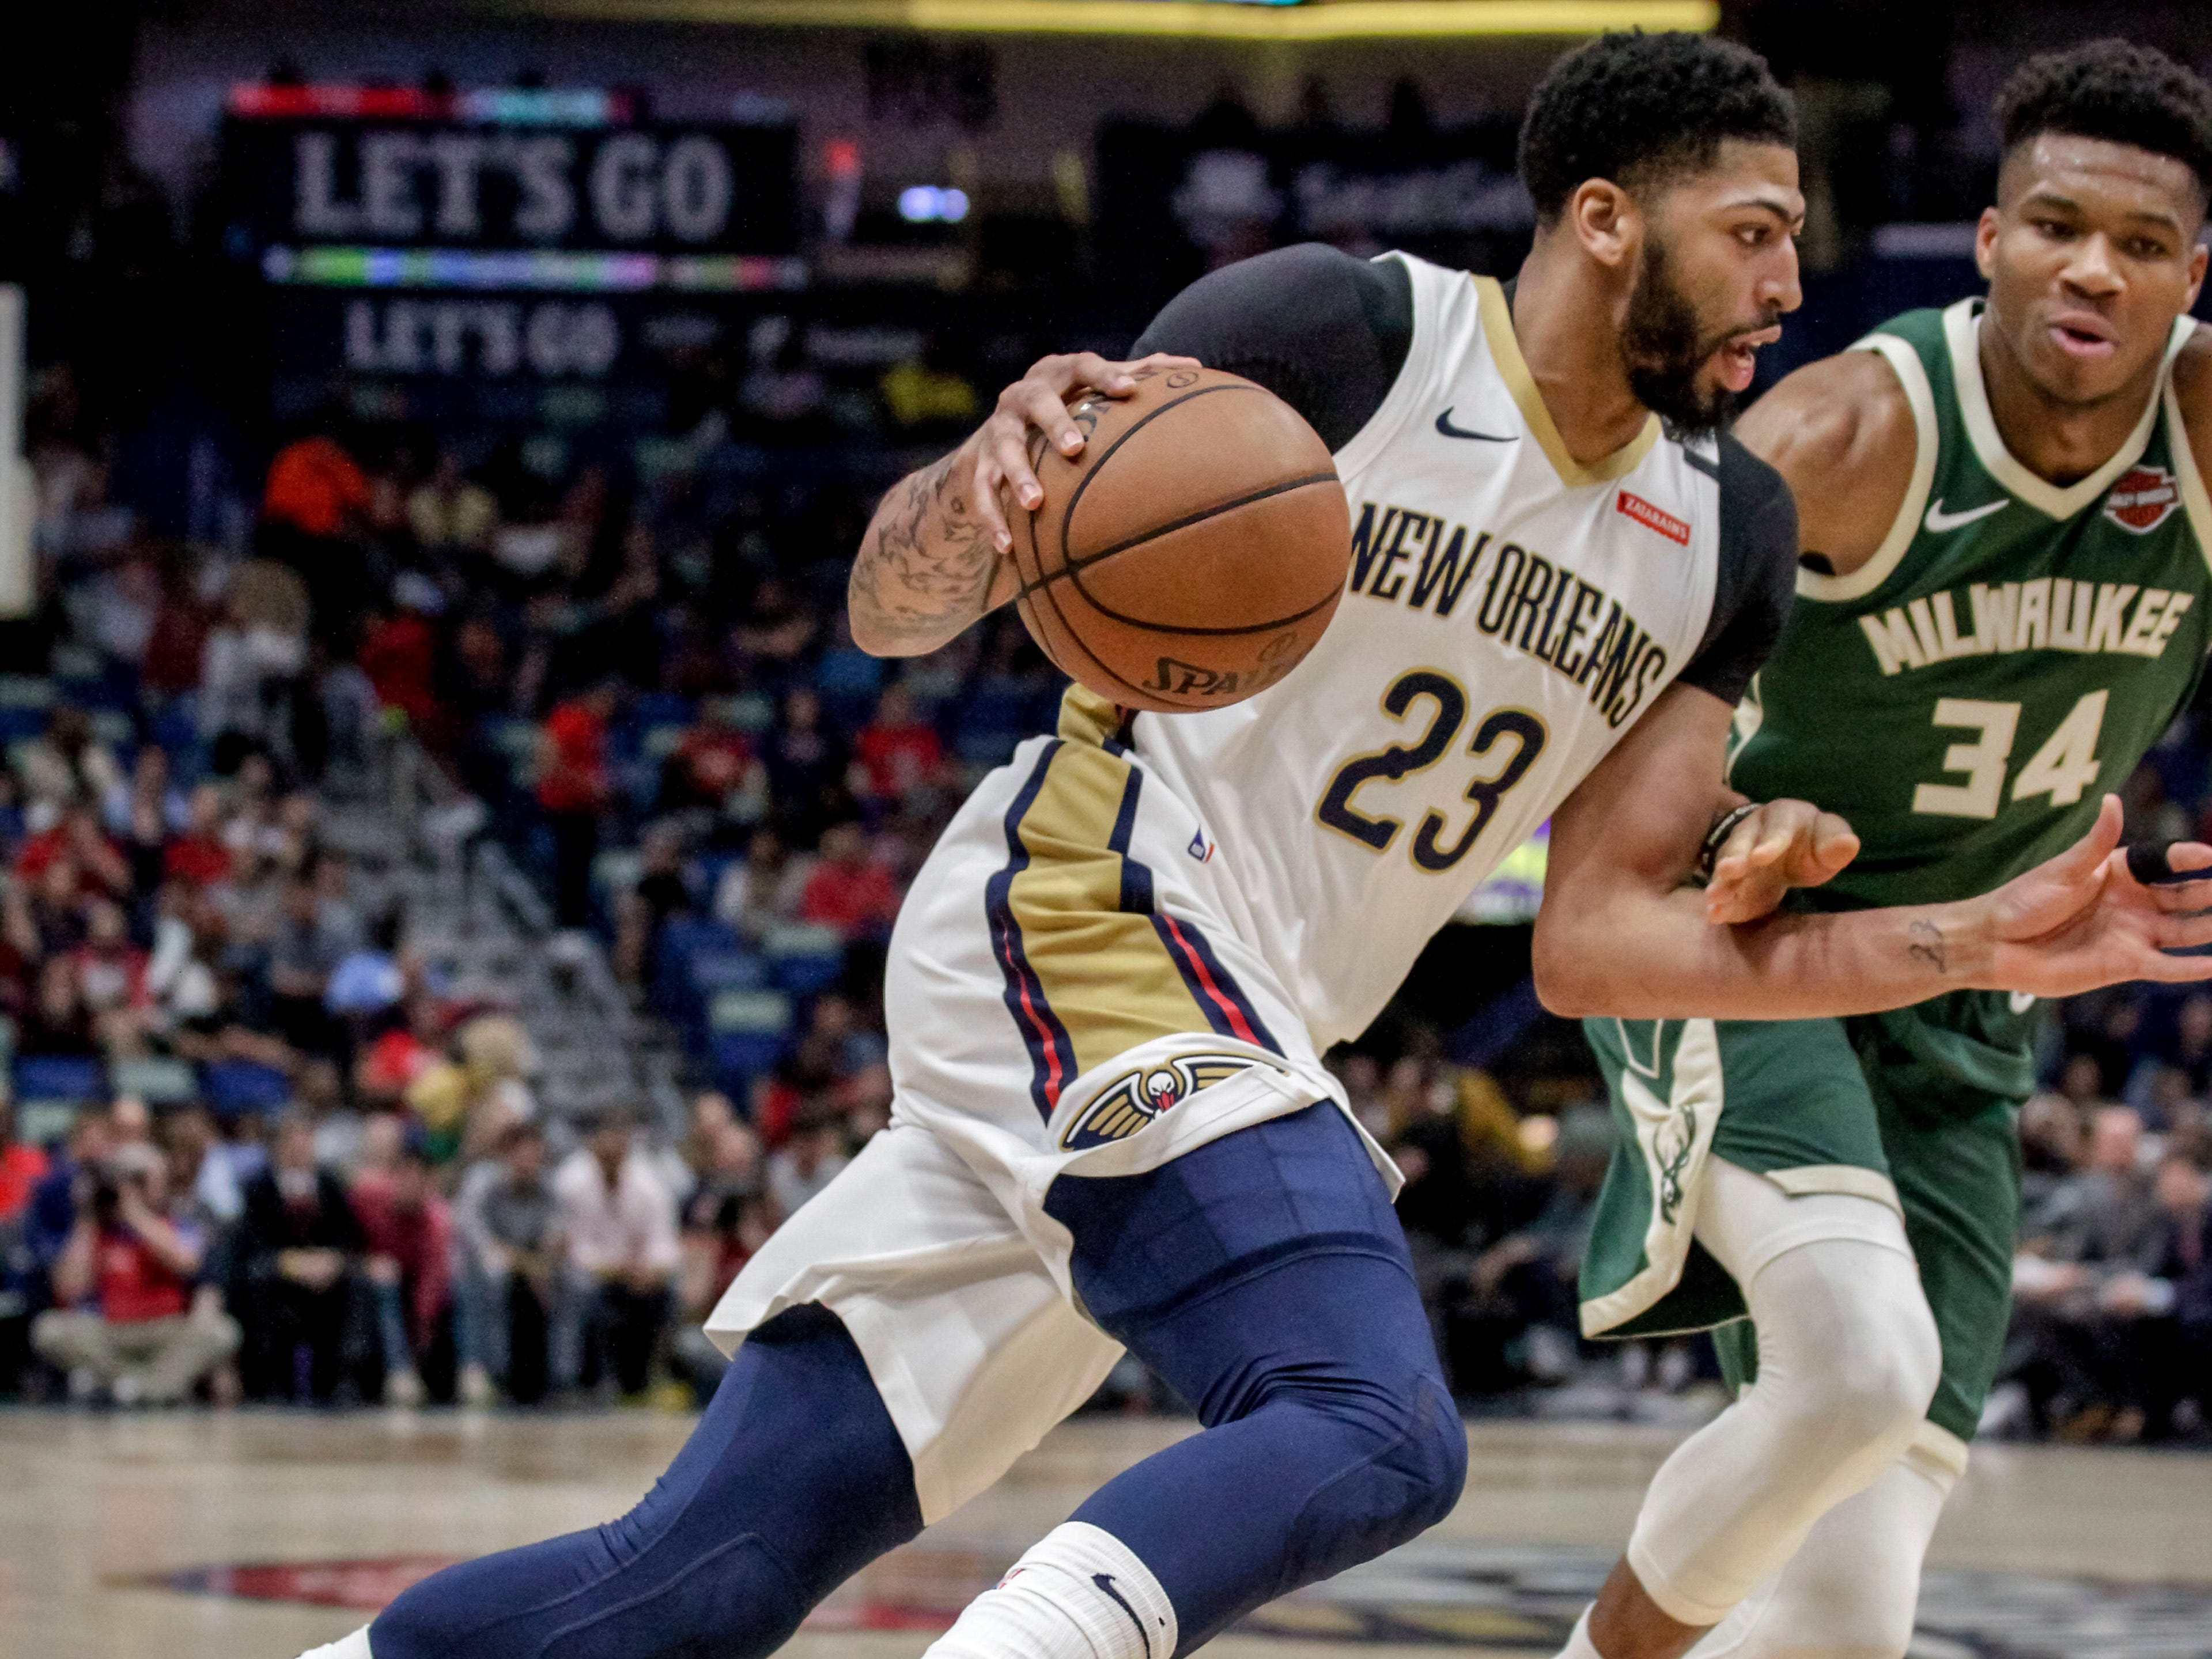 In a matchup of all-stars, Pelicans forward Anthony Davis drives against Bucks forward Giannis Antetokounmpo during the first half.